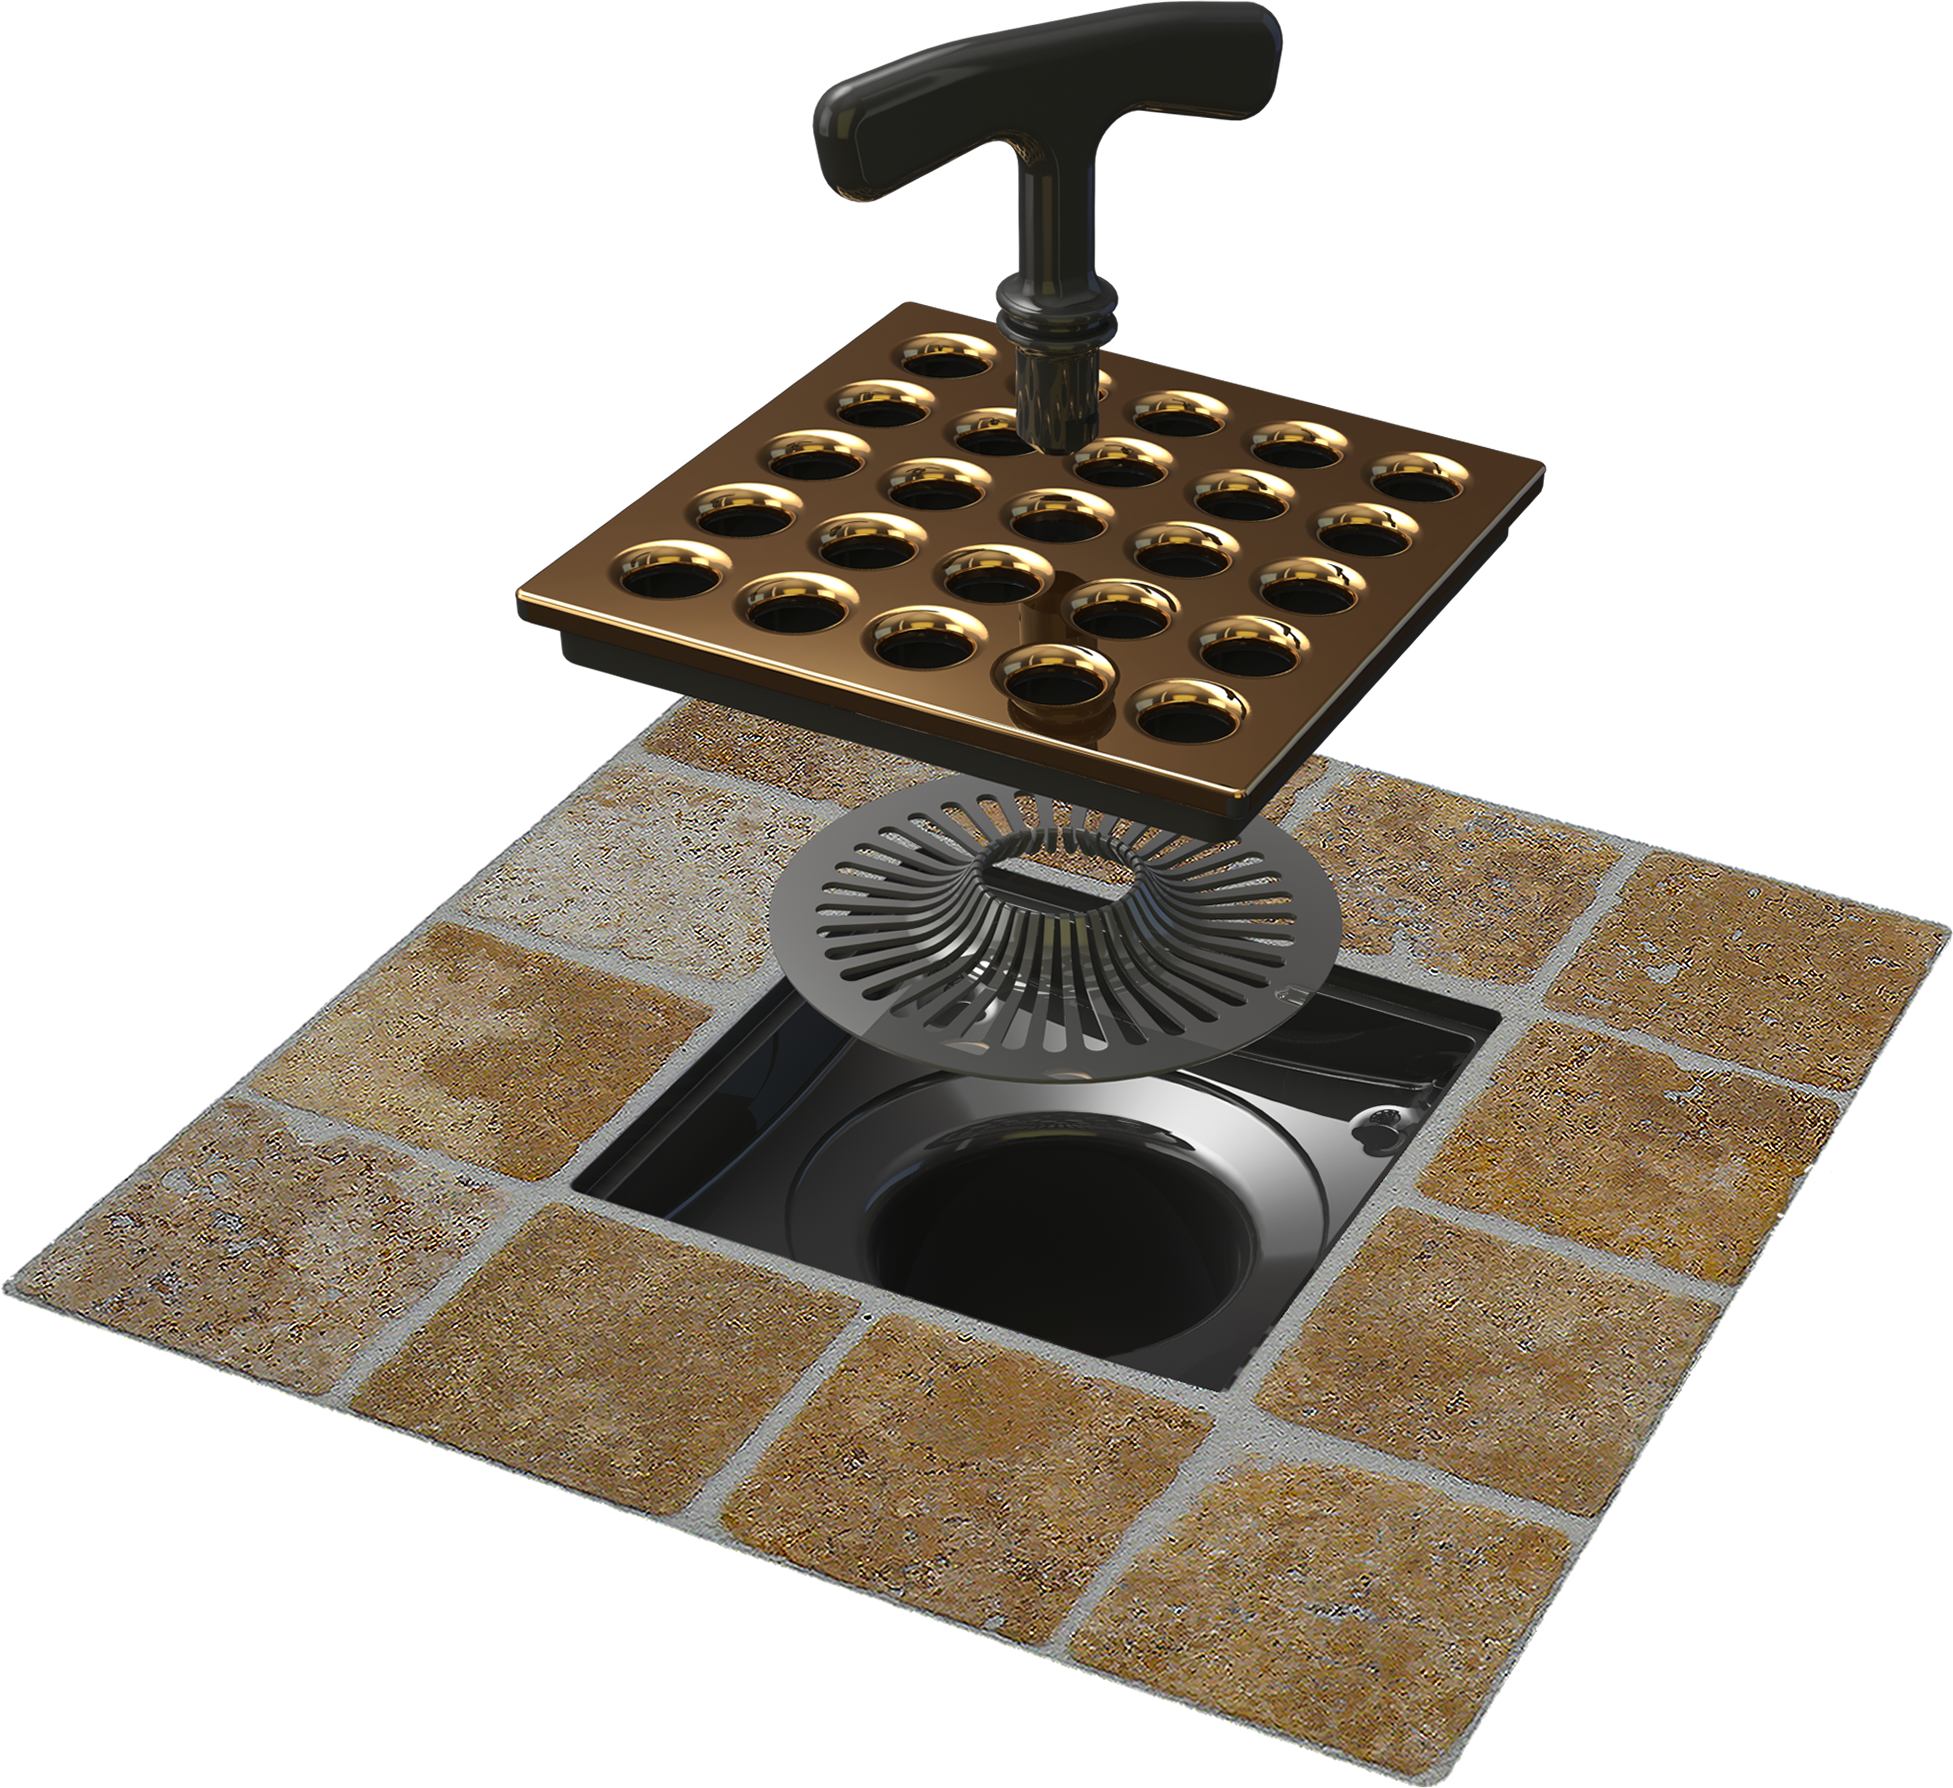 If You Are Remodeling Shower Why Not Try A Square Screw Less Shower Drain From Flooring Supply Shop Super Shower Drain Shower Drains Radiant Floor Heating